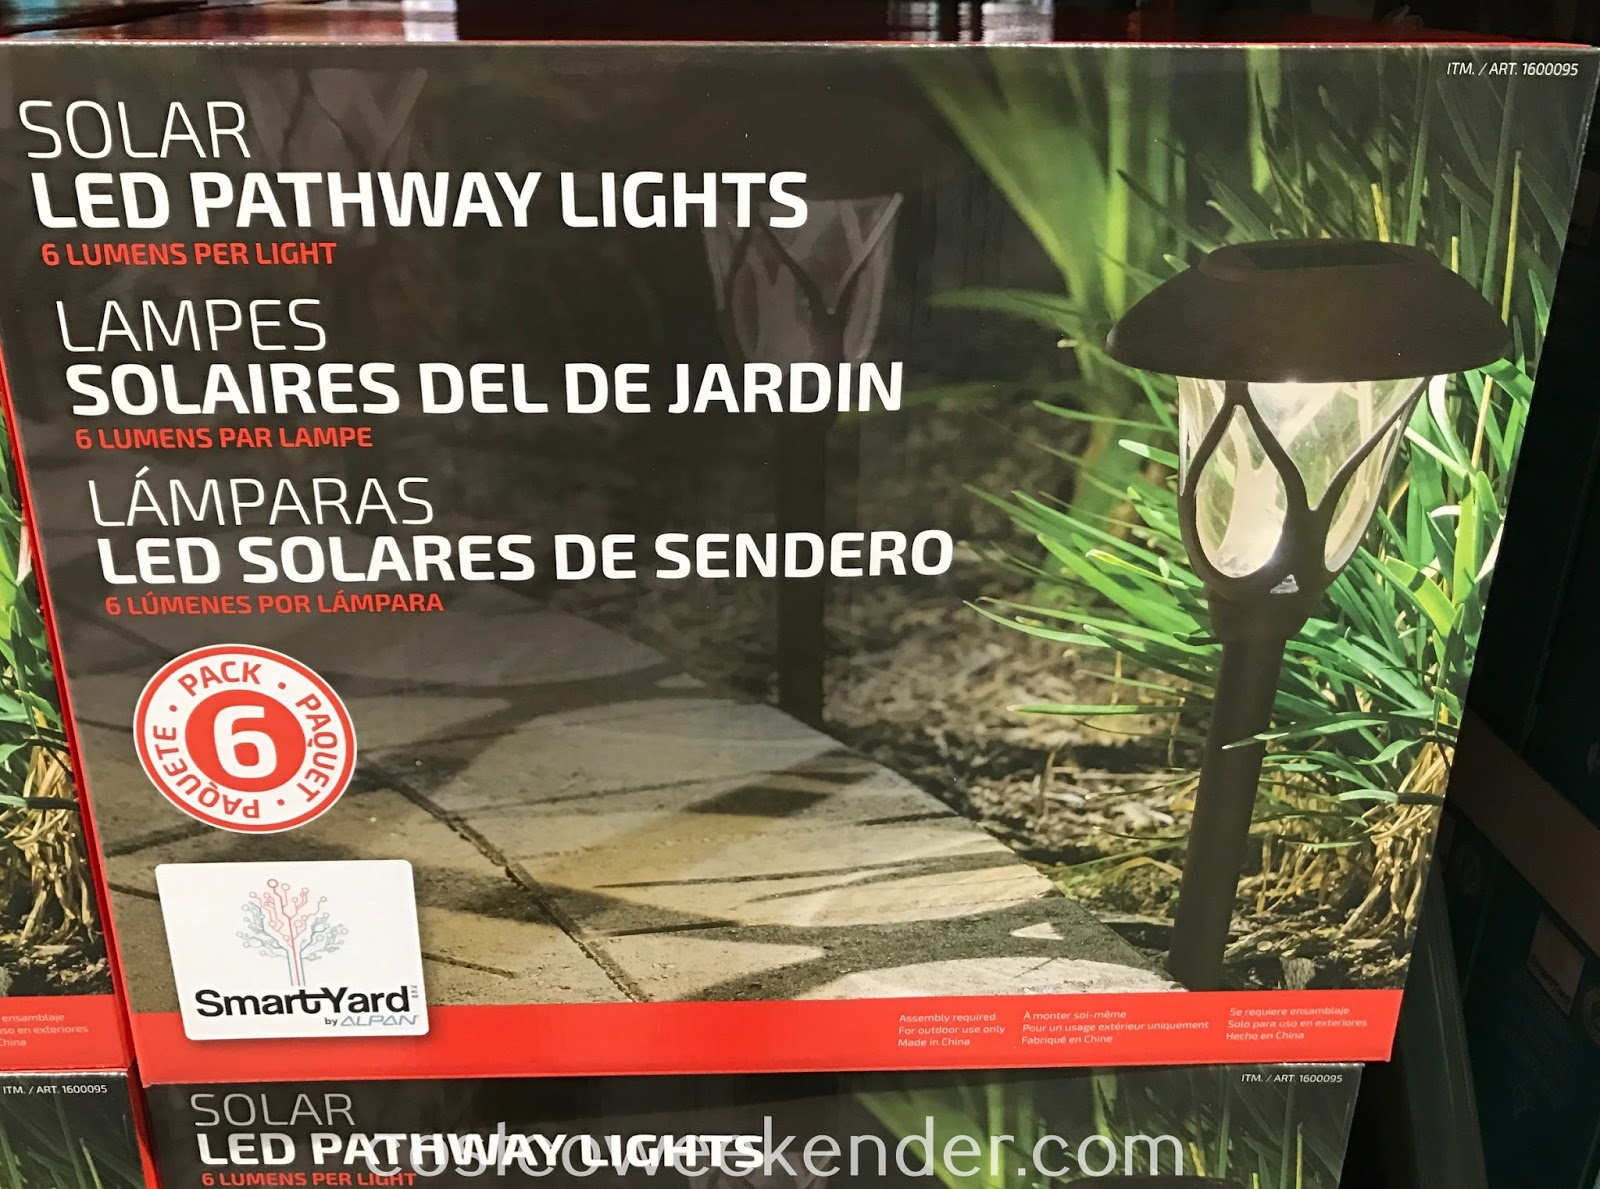 Highlight parts of your yard with Alpan SmartYard Solar LED Pathway Lights